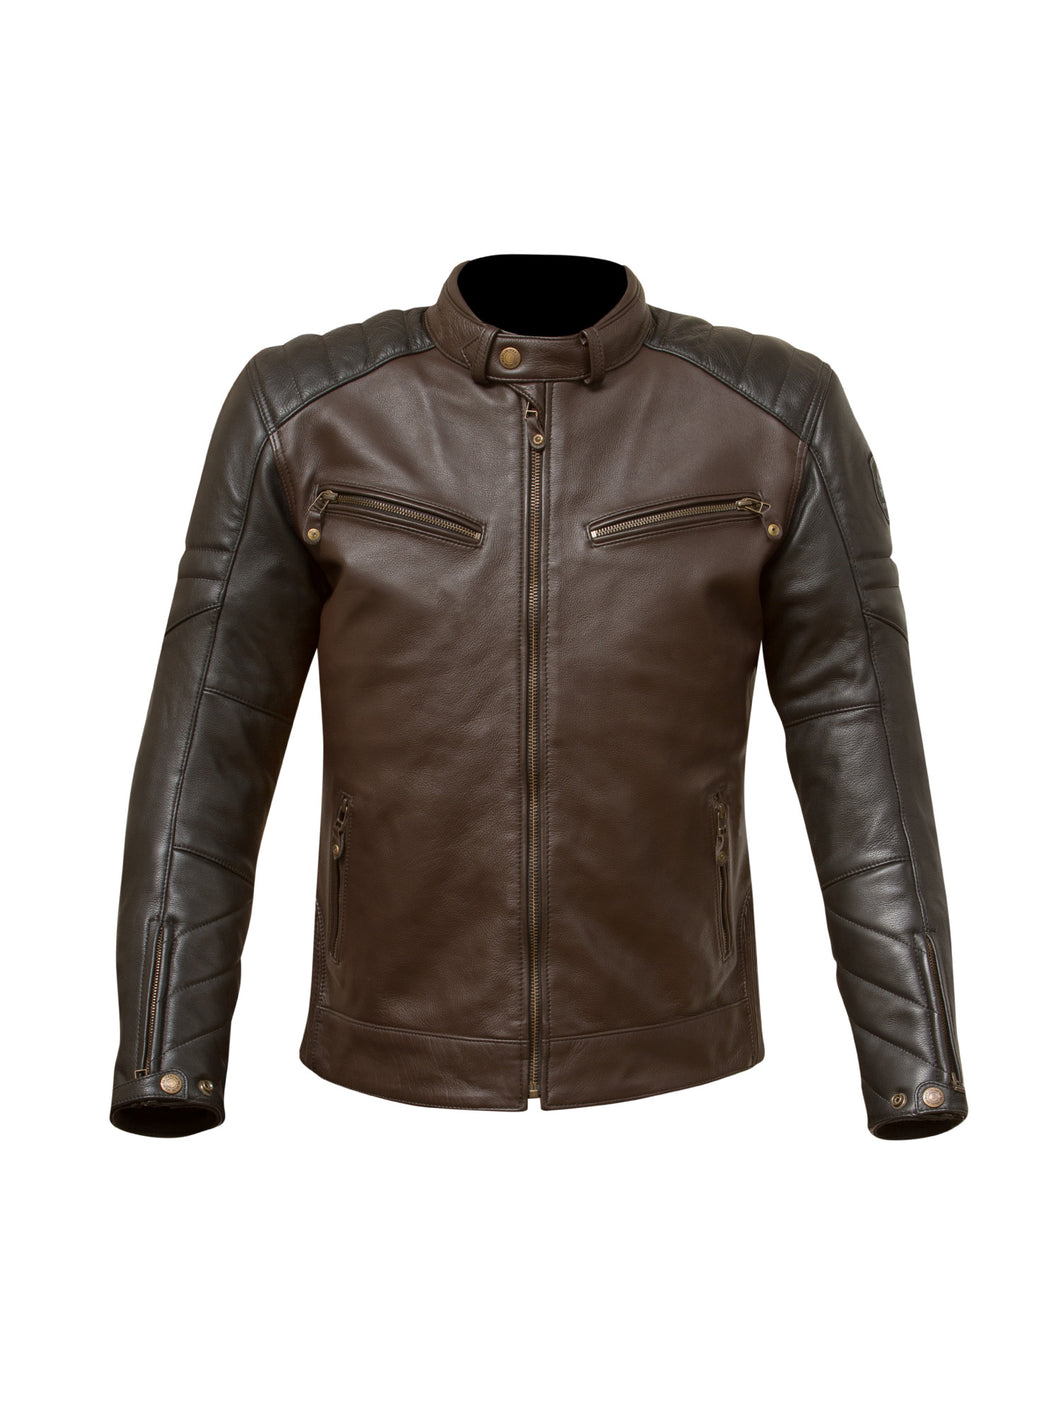 Merlin Chase Leather Jacket